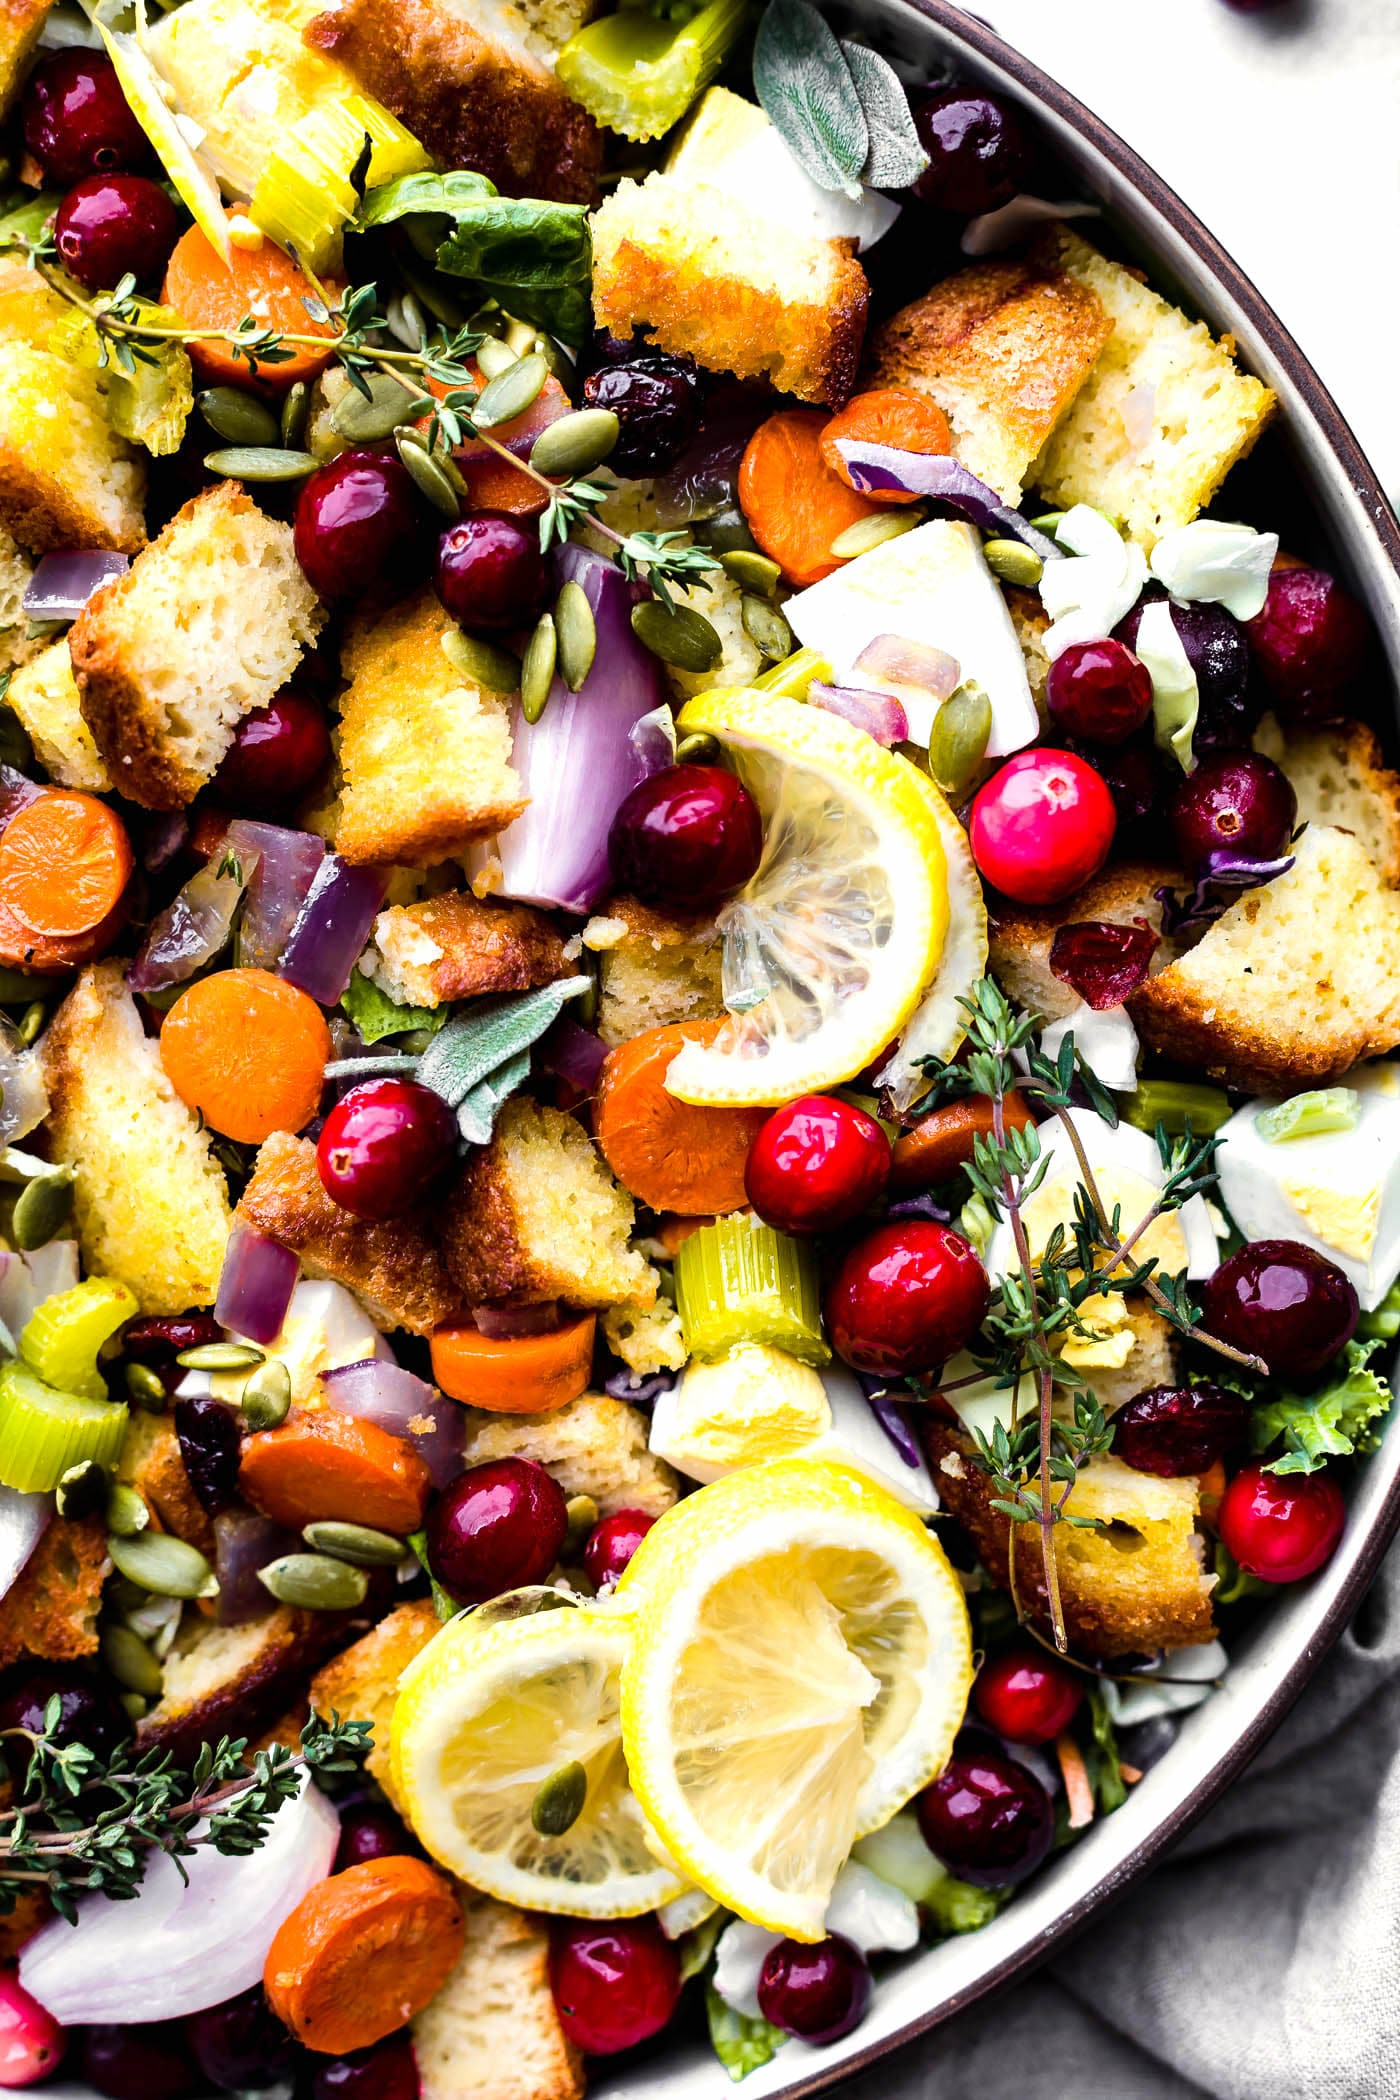 Gluten Free Stuffing Salad with Warm Onion Dressing! A lightened up Thanksgiving side dish that quick to make and flavorful. A Dairy free, easy, healthy gluten free stuffing recipe!